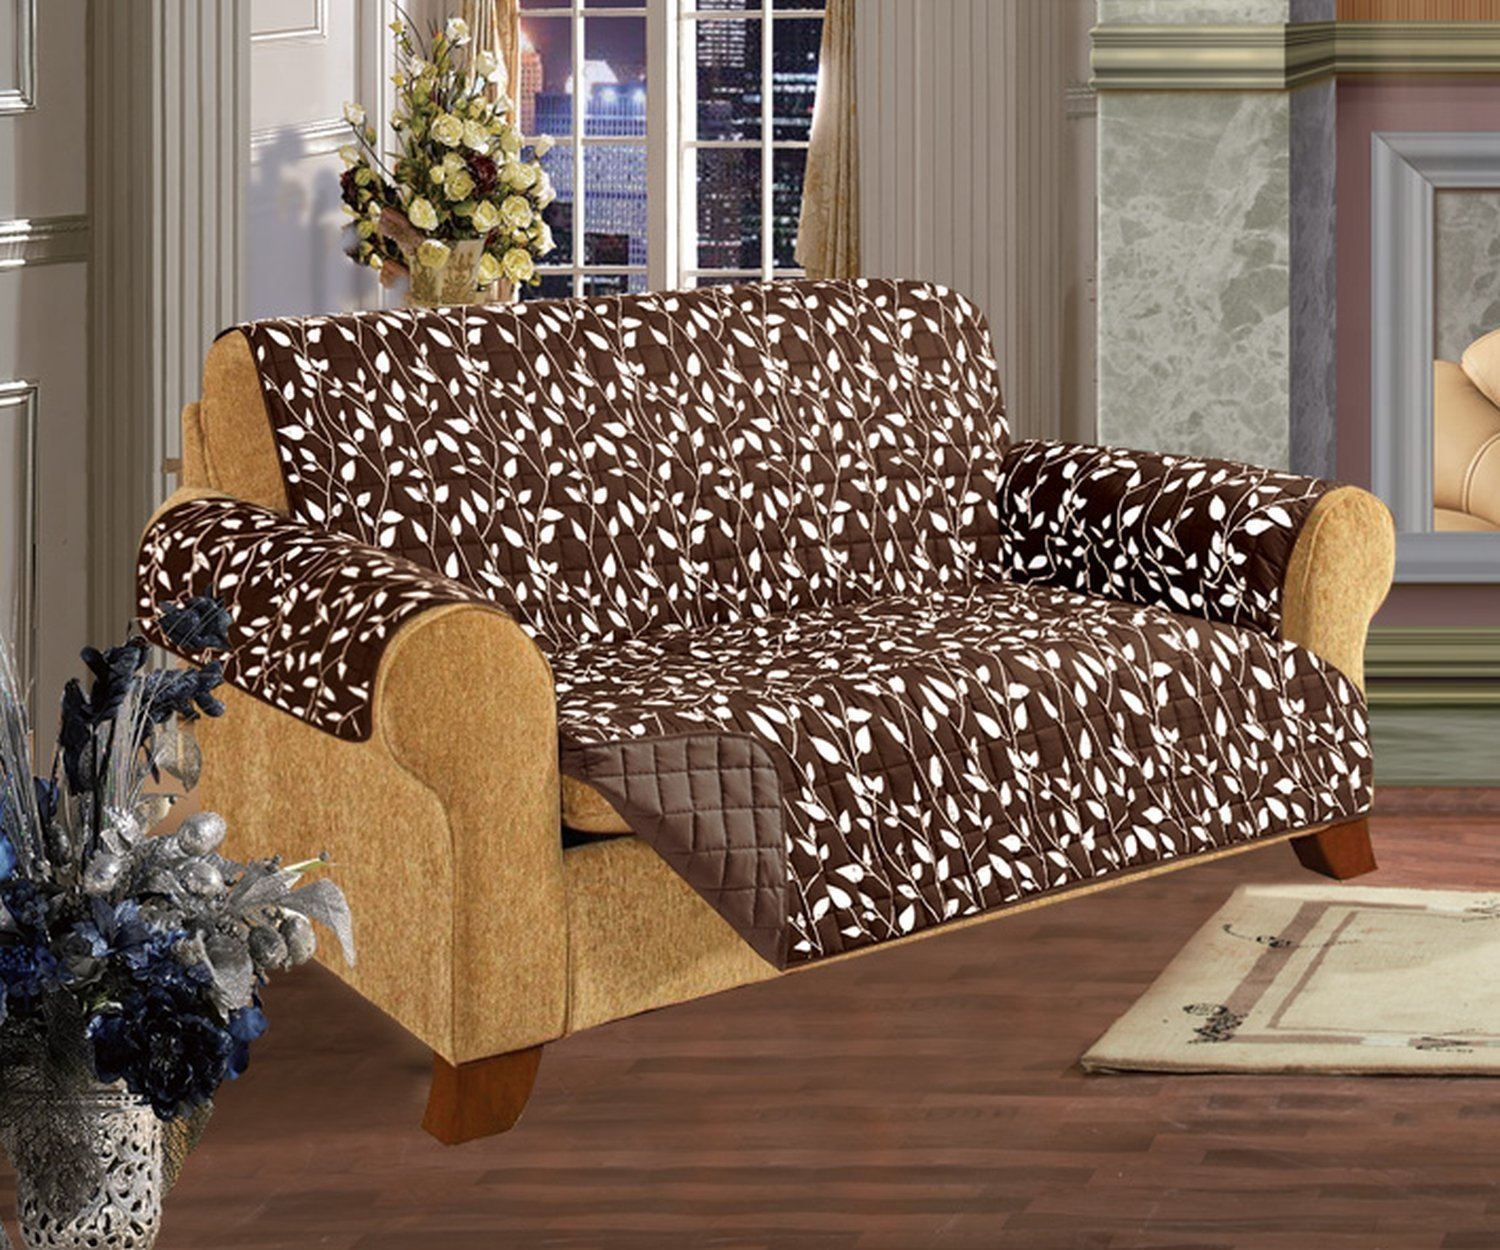 Quilted Pet Dog Children Kids Furniture Protector Slip Cover, Leaf Design Chocolate Love Seat